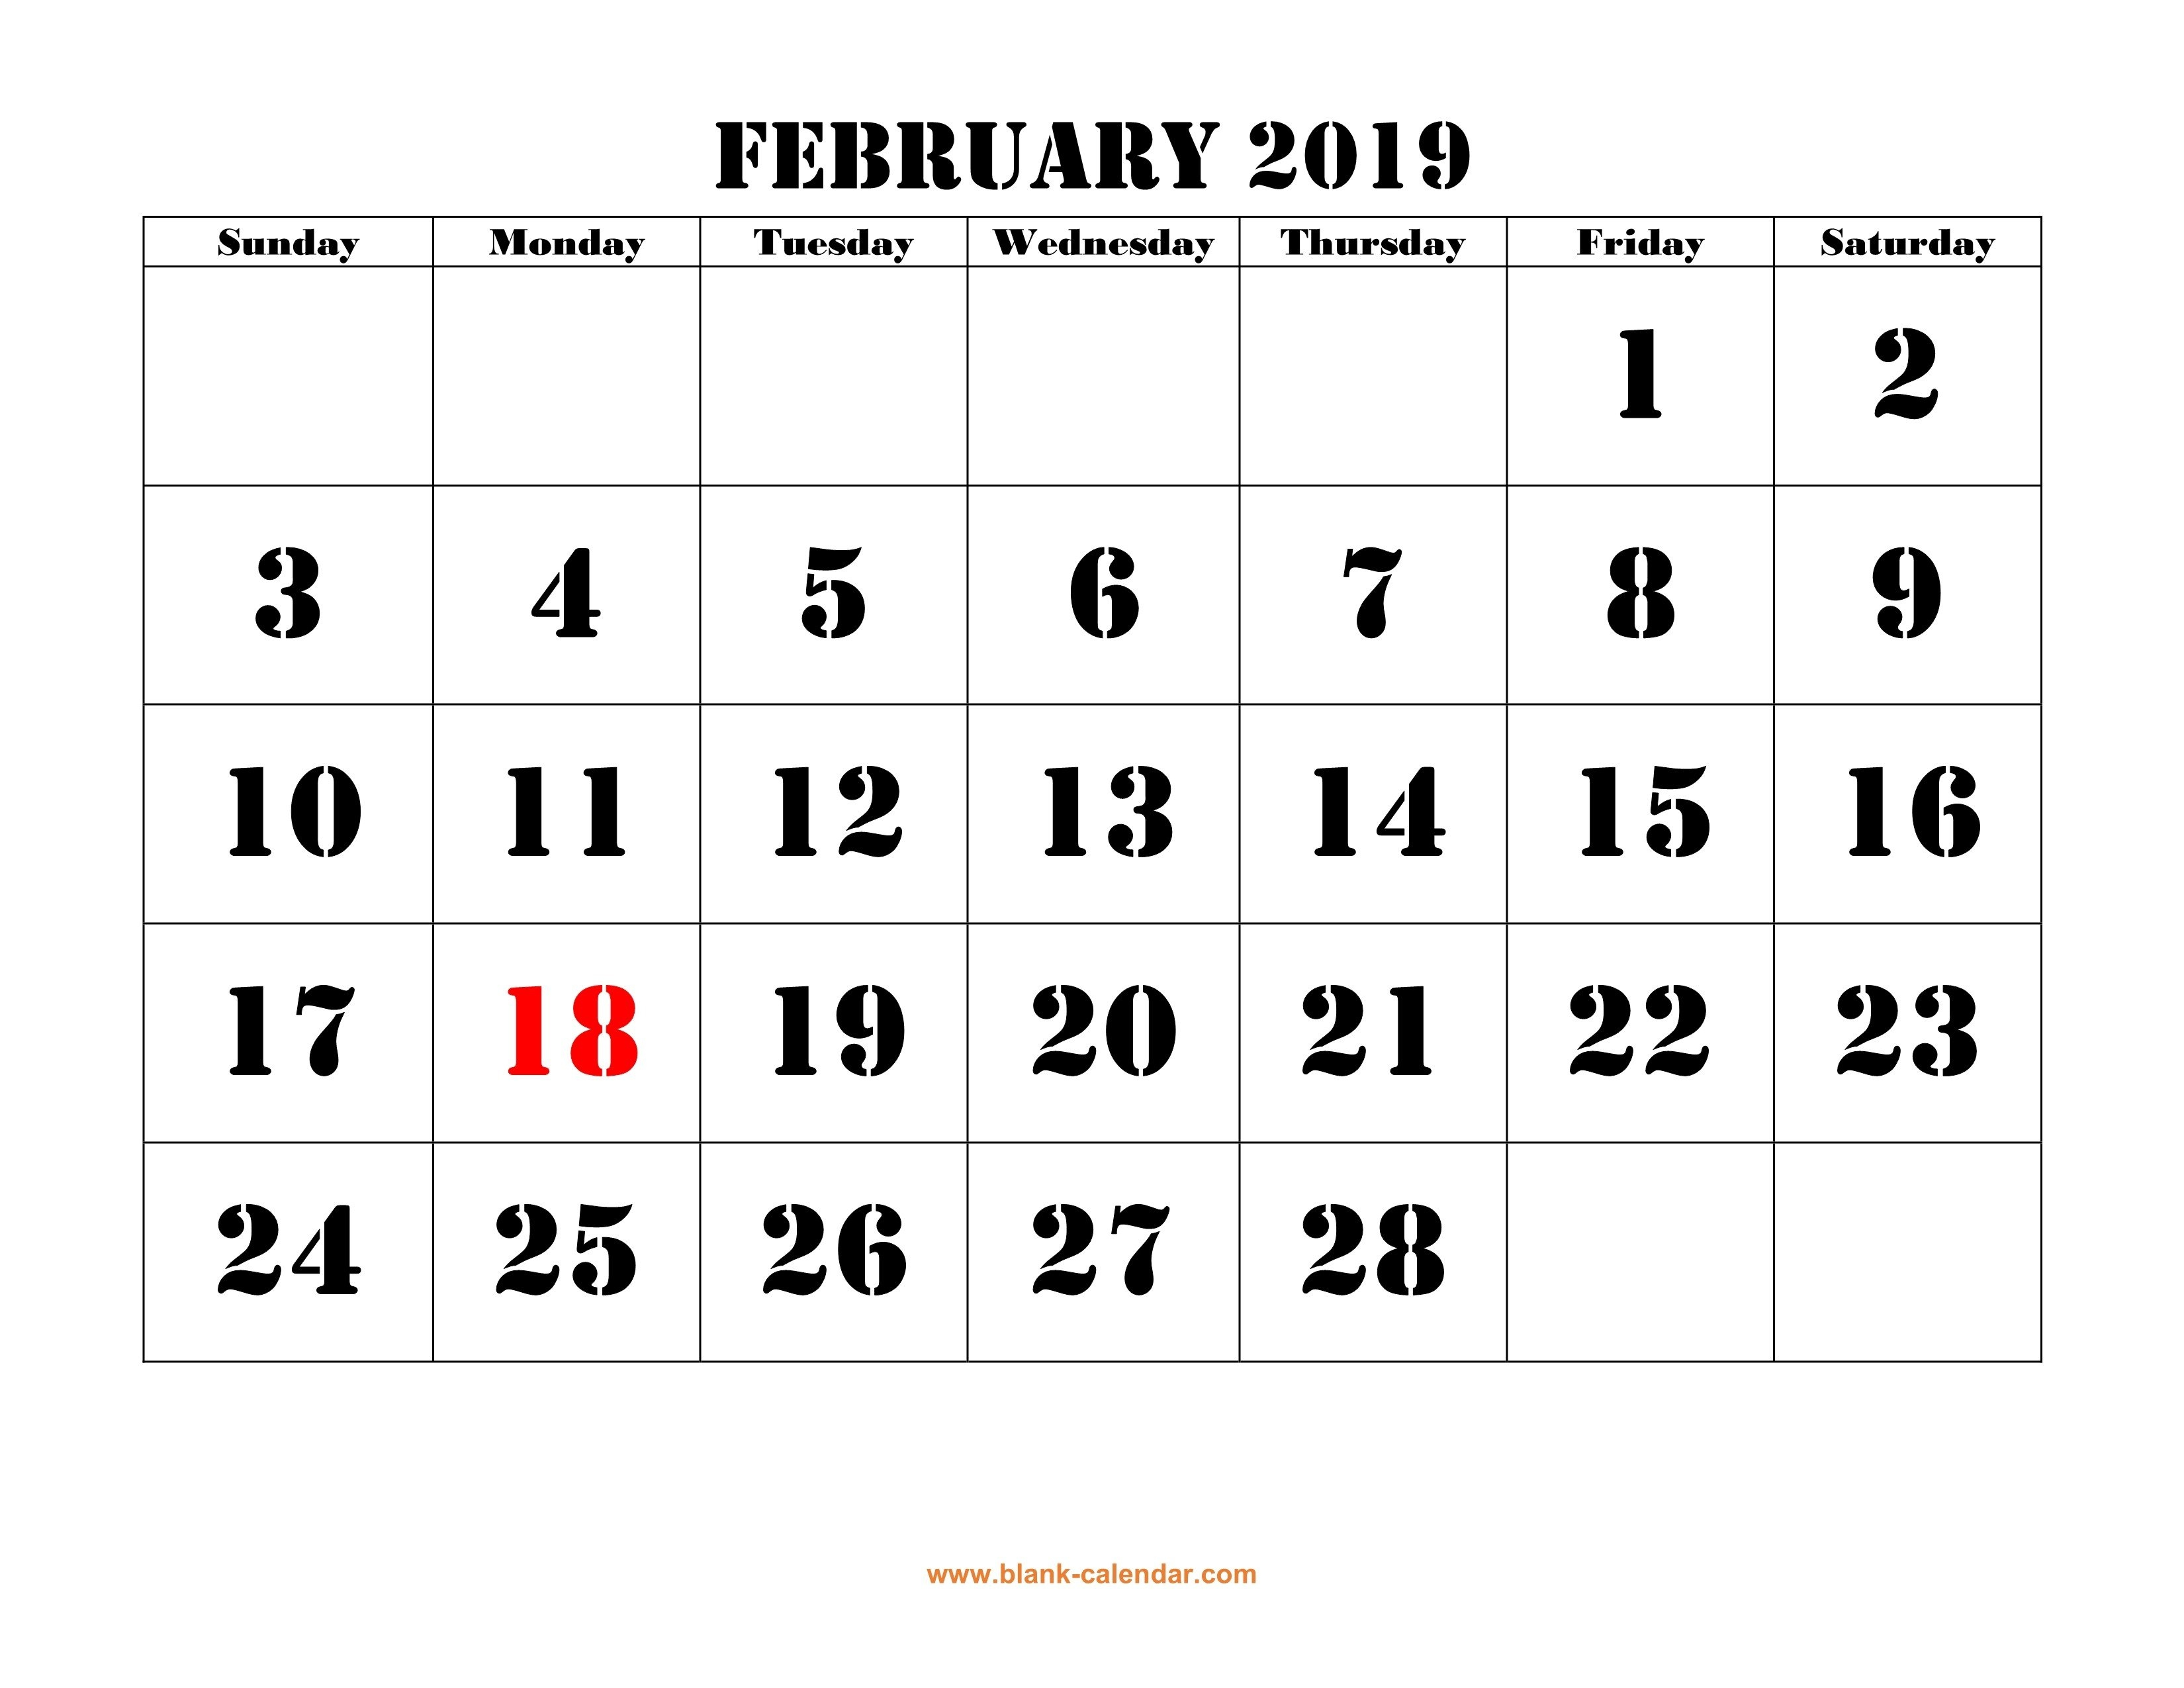 Google Docs Calendar February Template 2019 | Google Docs Calendar 2019 Outline